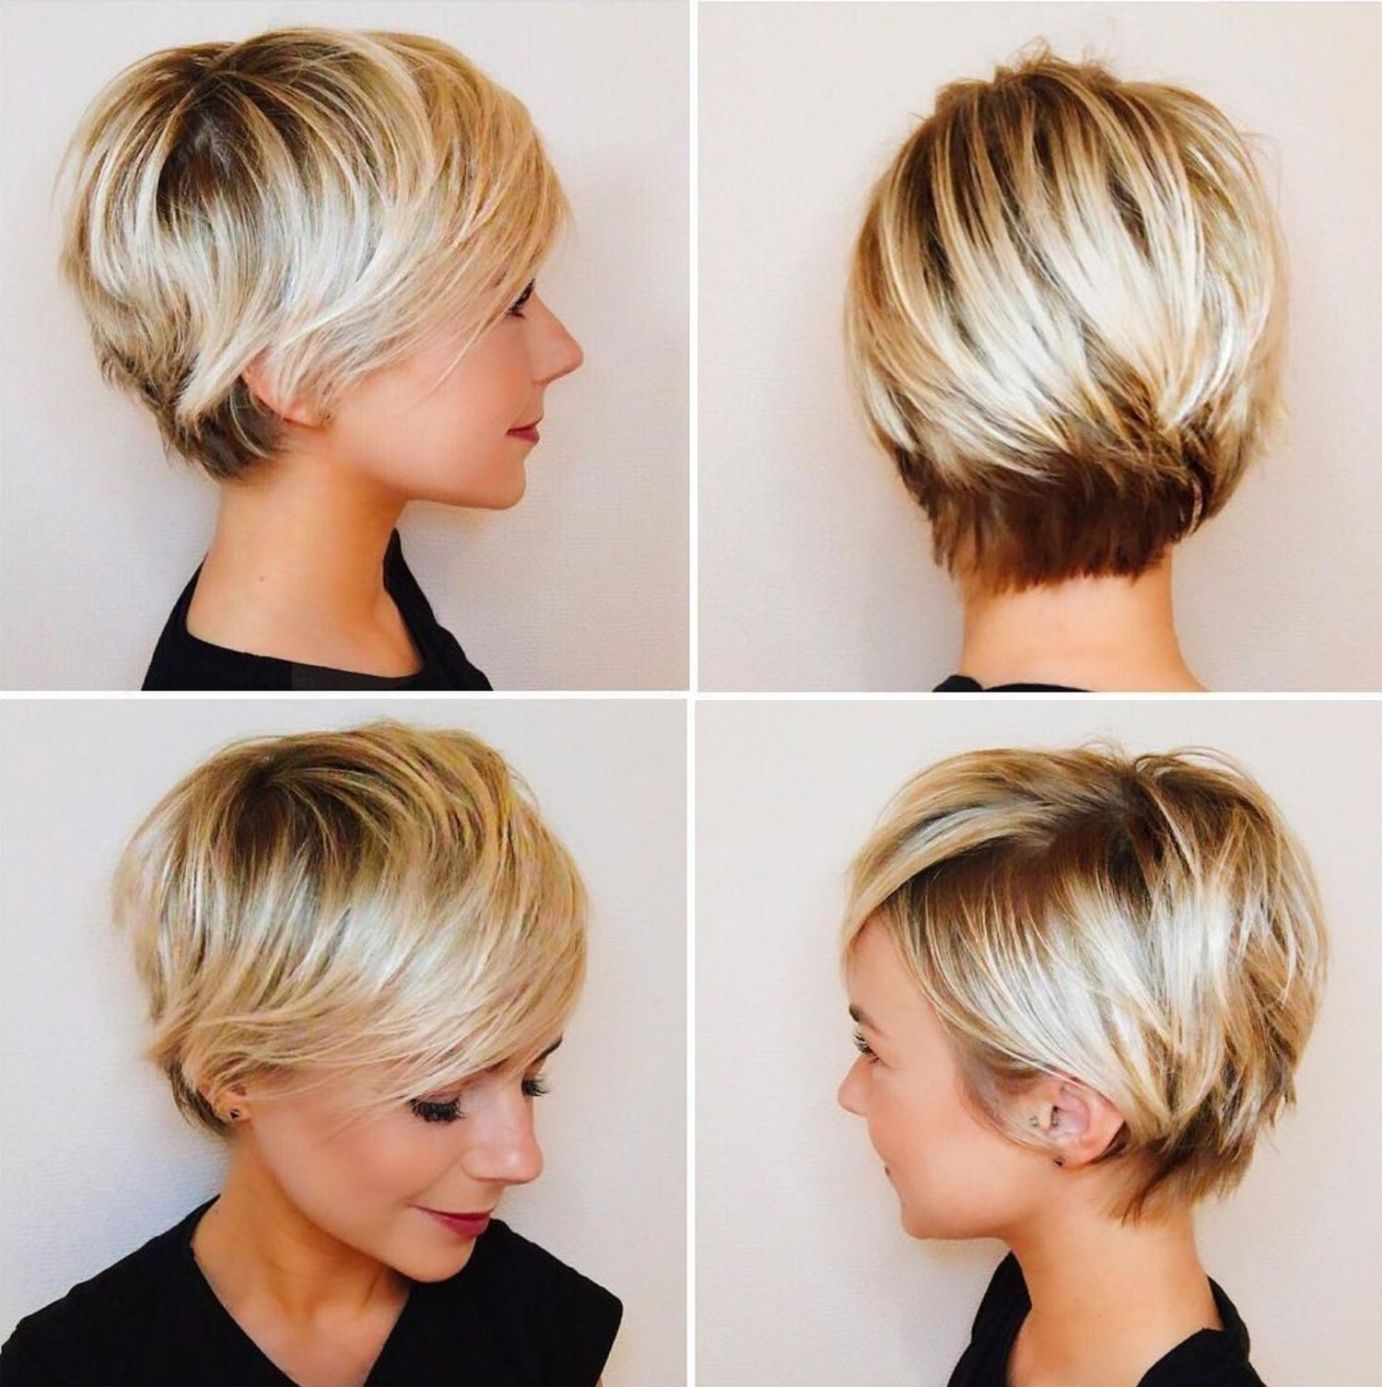 Pixie Haircuts With Bangs 50 Terrific Tapers Cute Hairstyles For Short Hair Short Hair With Bangs Short Hair Styles